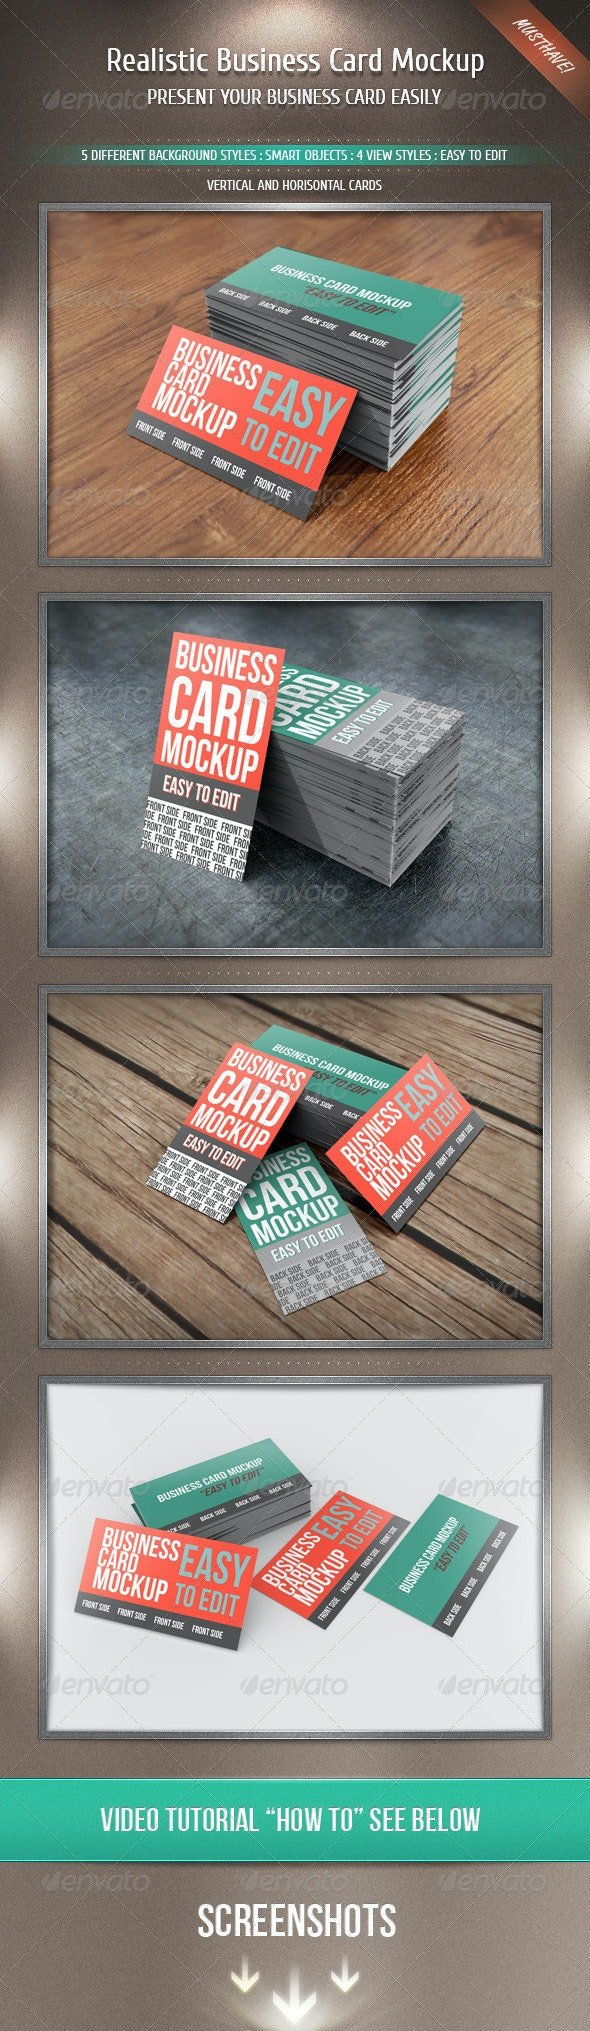 Realistic Business Card Mockup - Business Cards Print